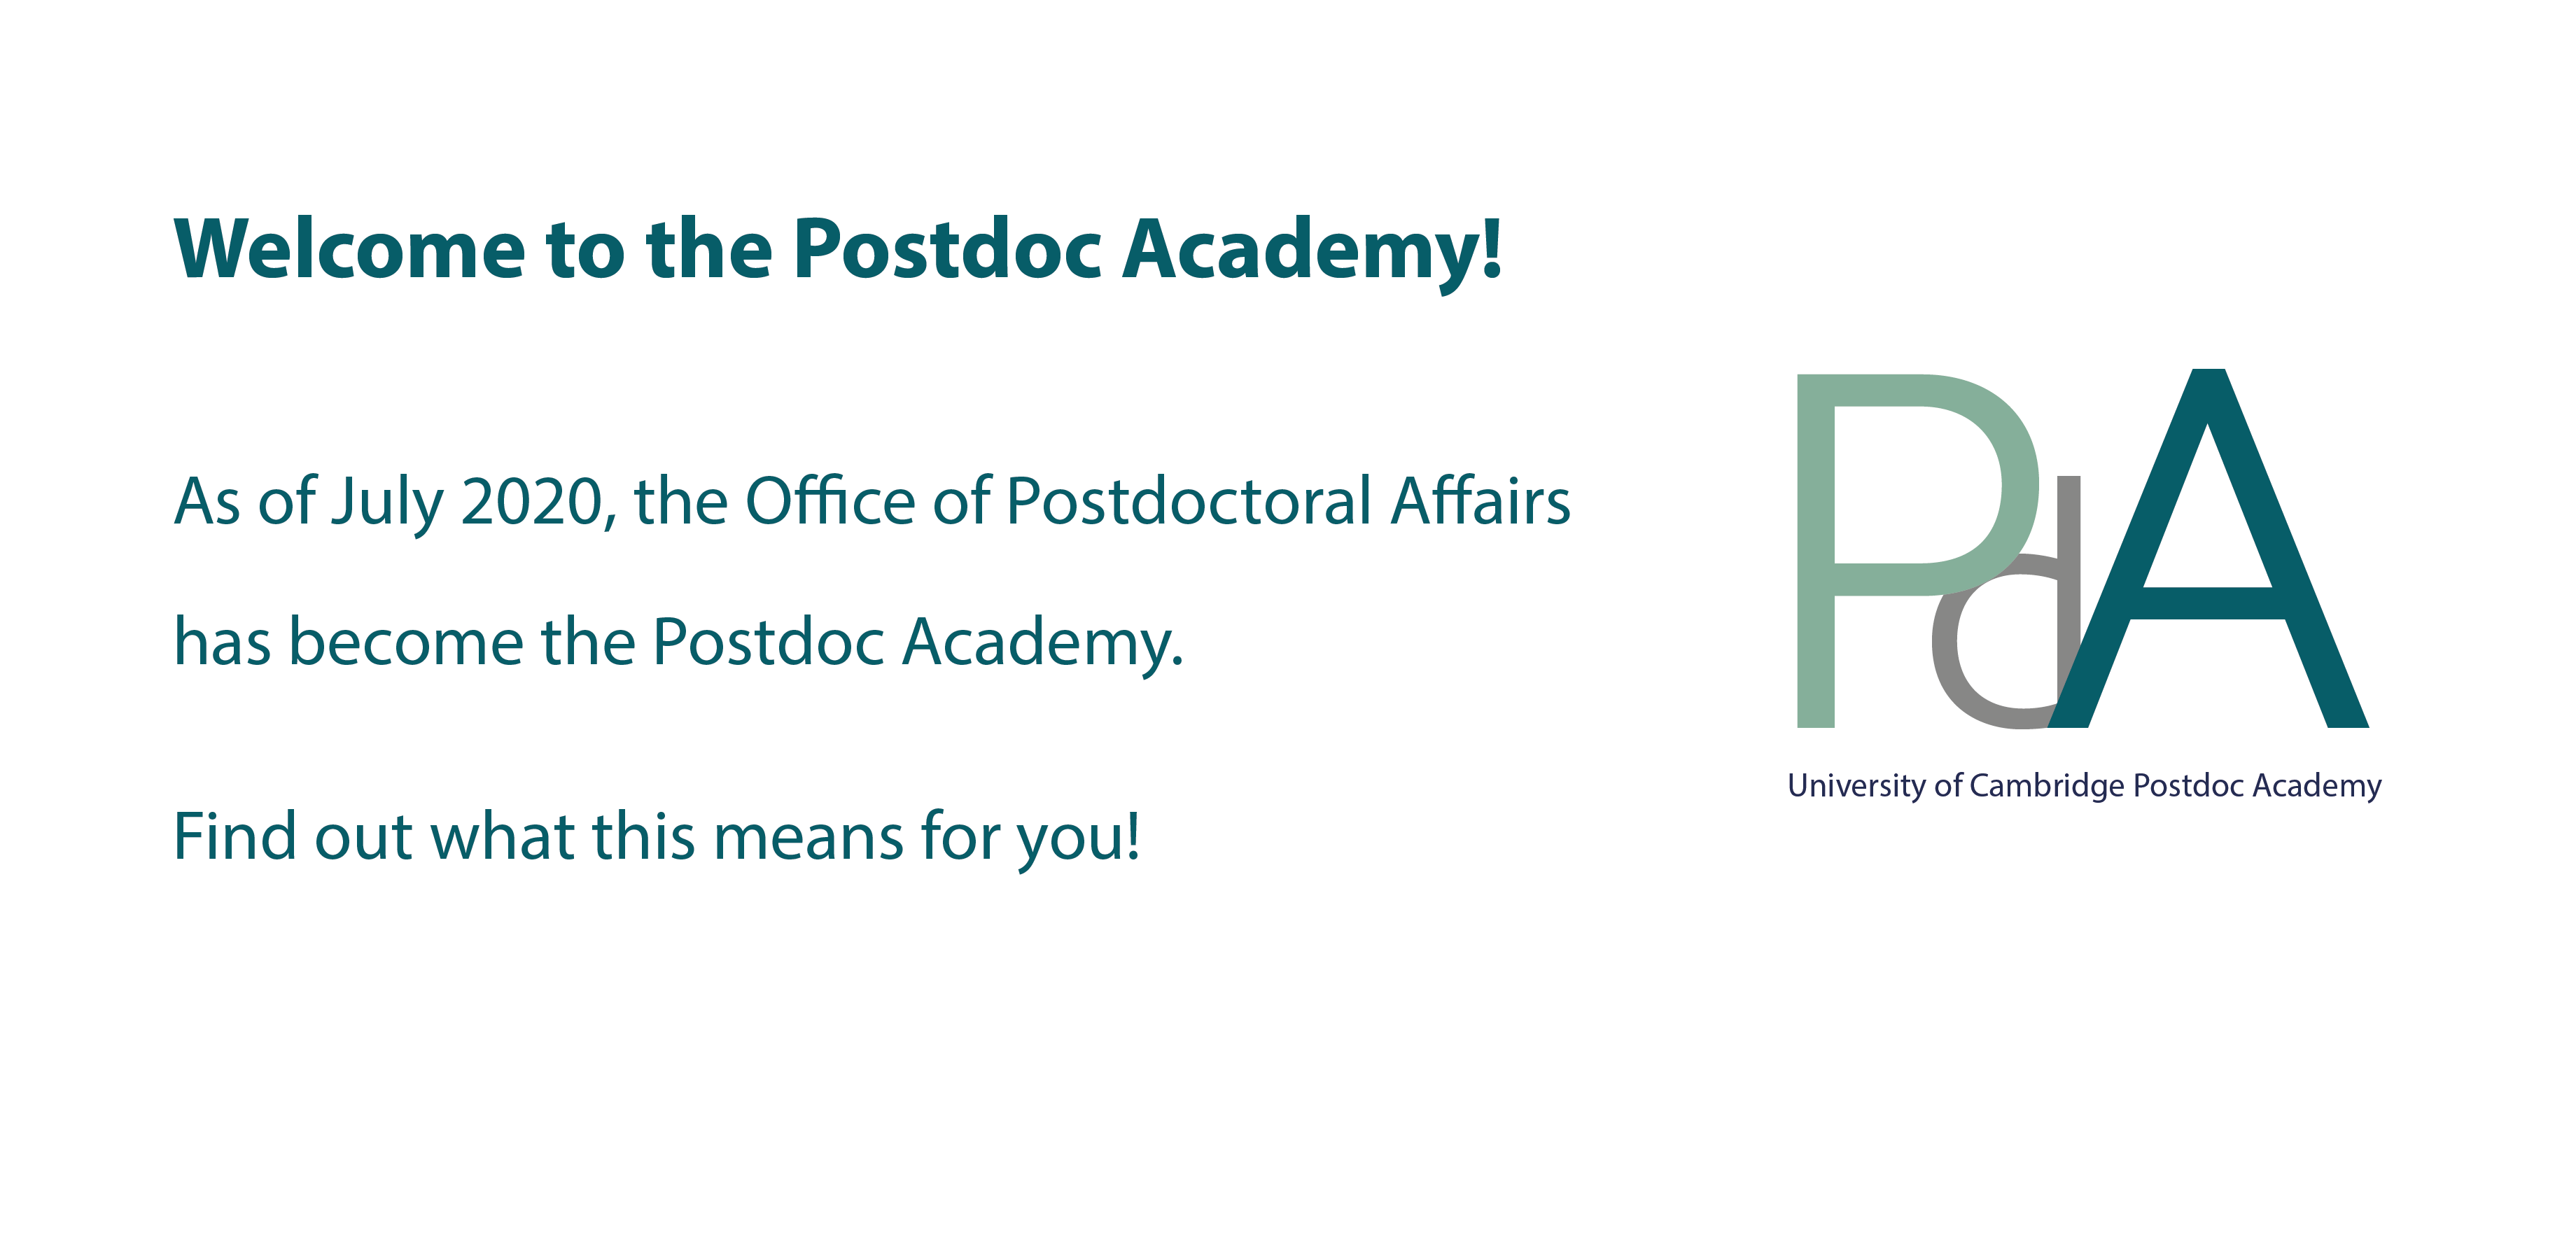 Welcome to the Postdoc Academy - find out what this change means for you!